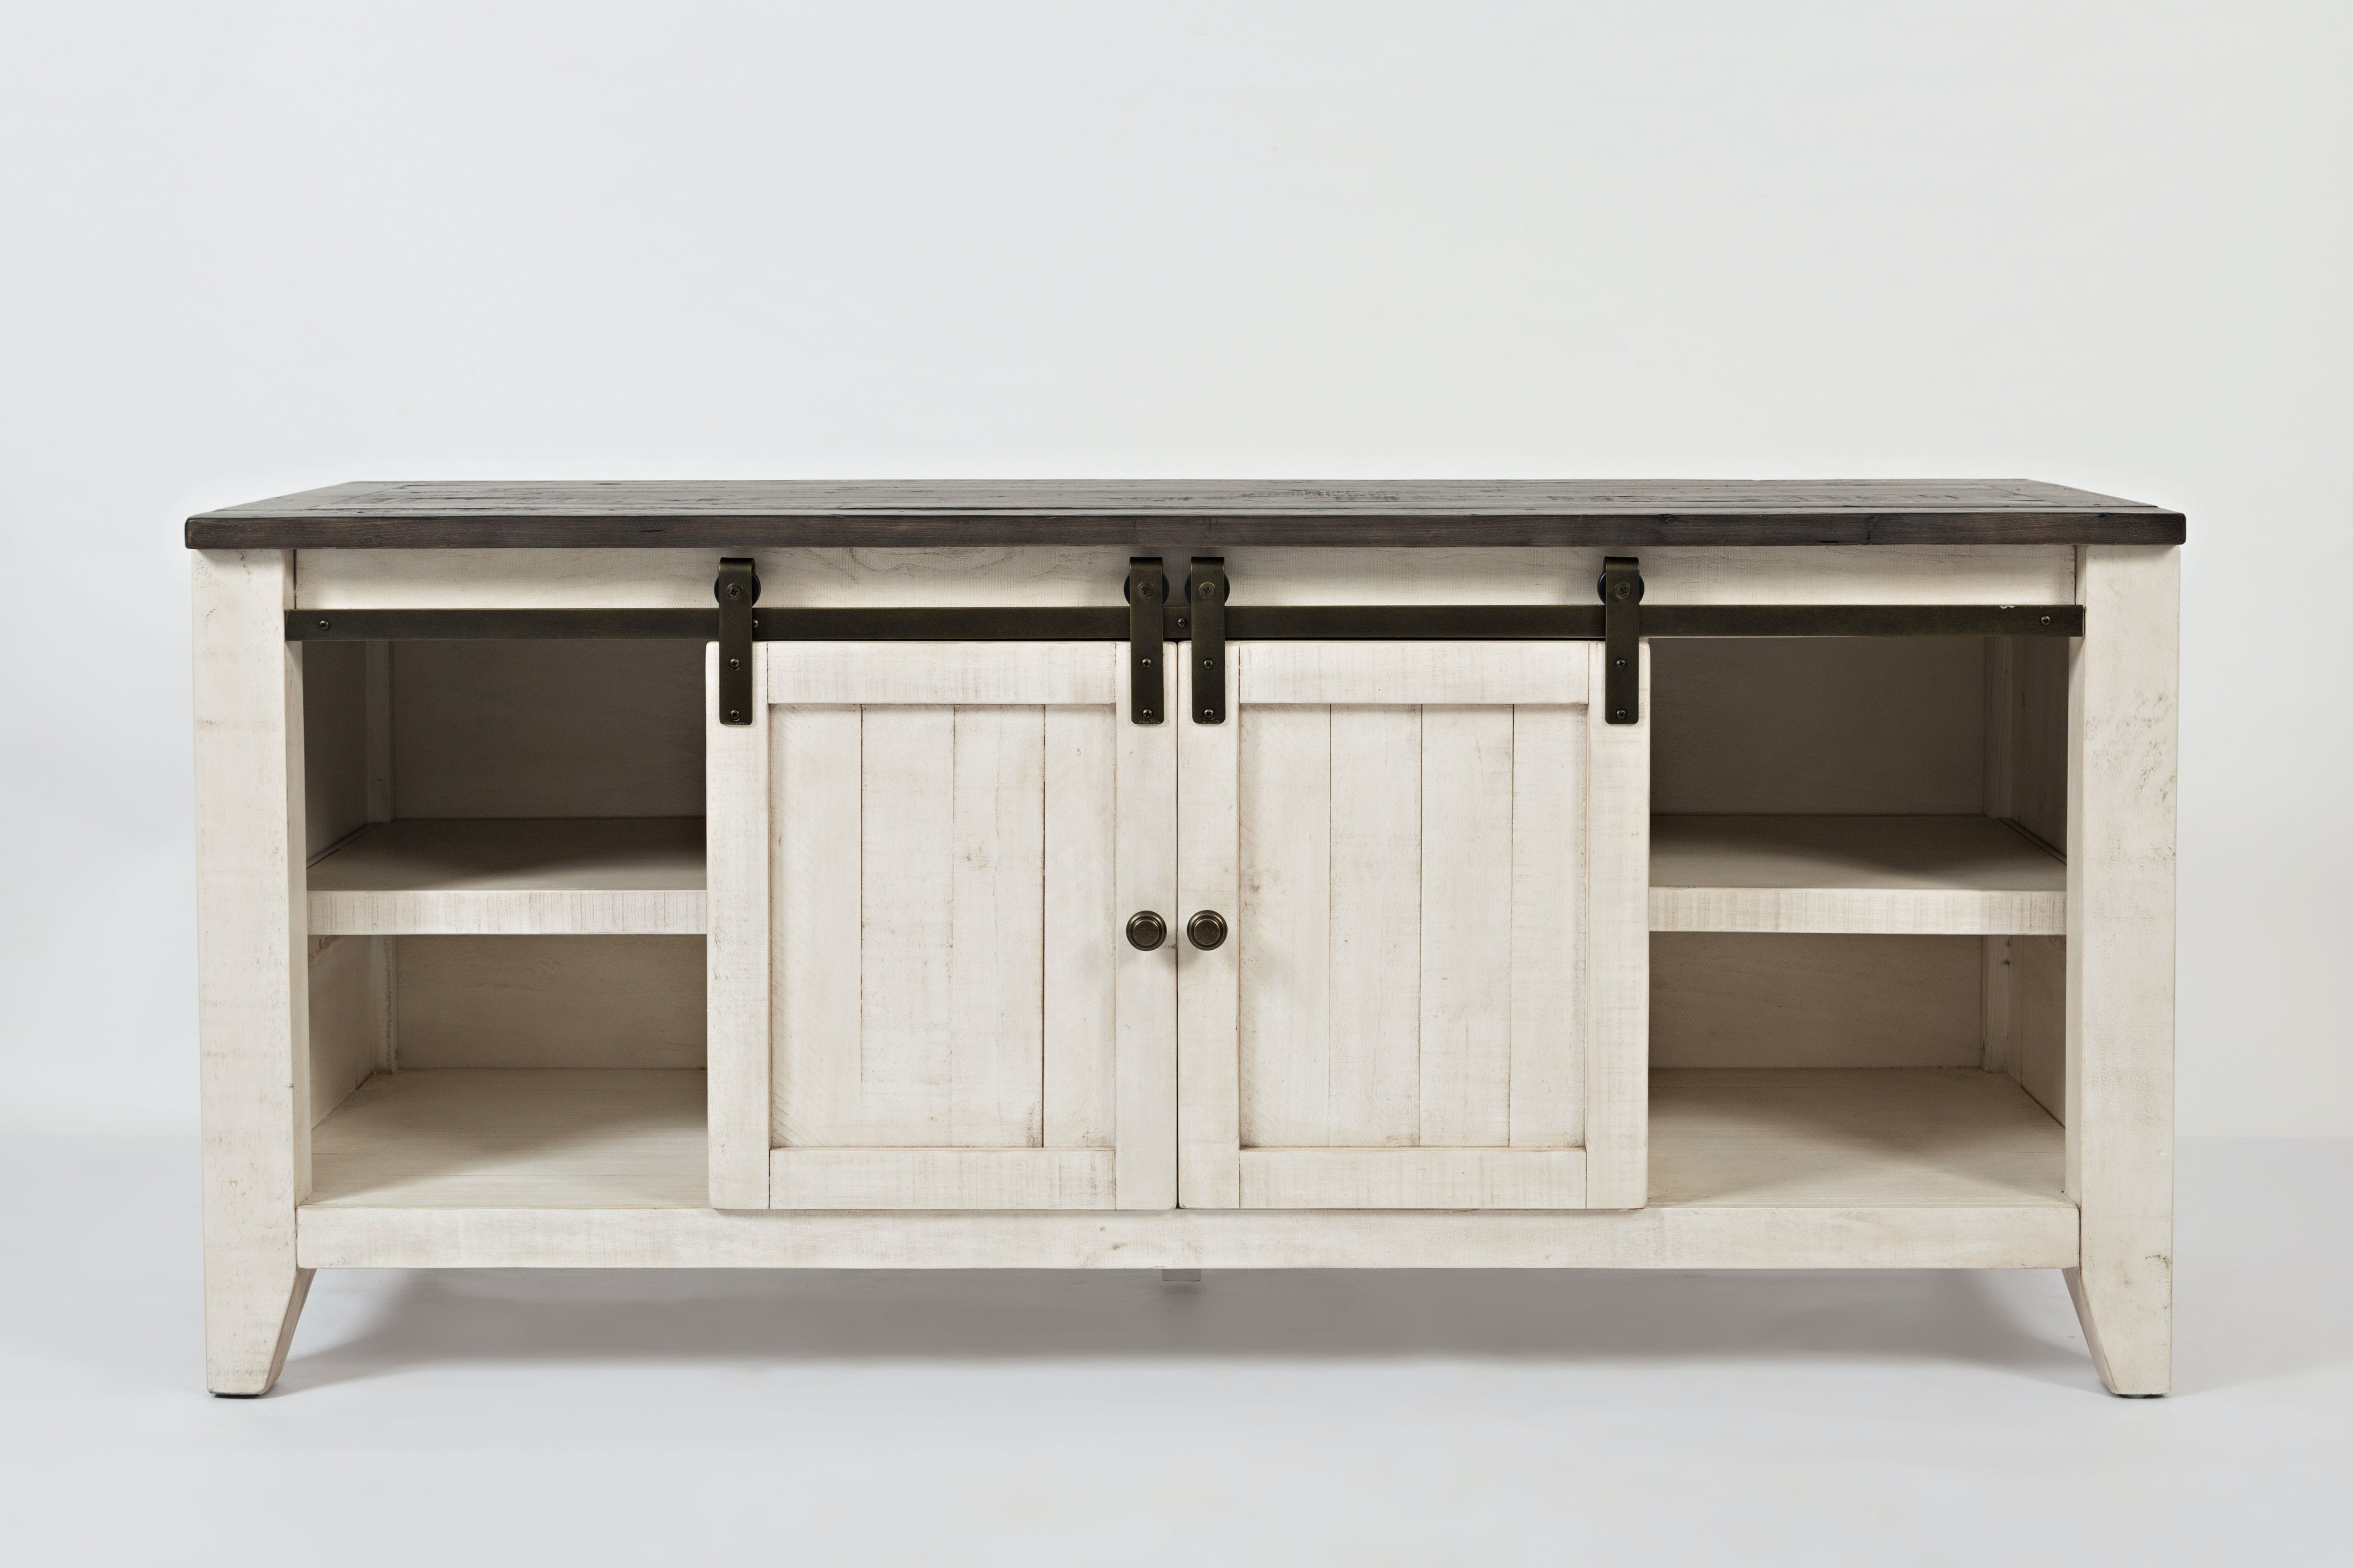 Picture of: Jofran Living Room 60 Console Table 1706 60 Gavigan S Furniture Bel Air Catonsville